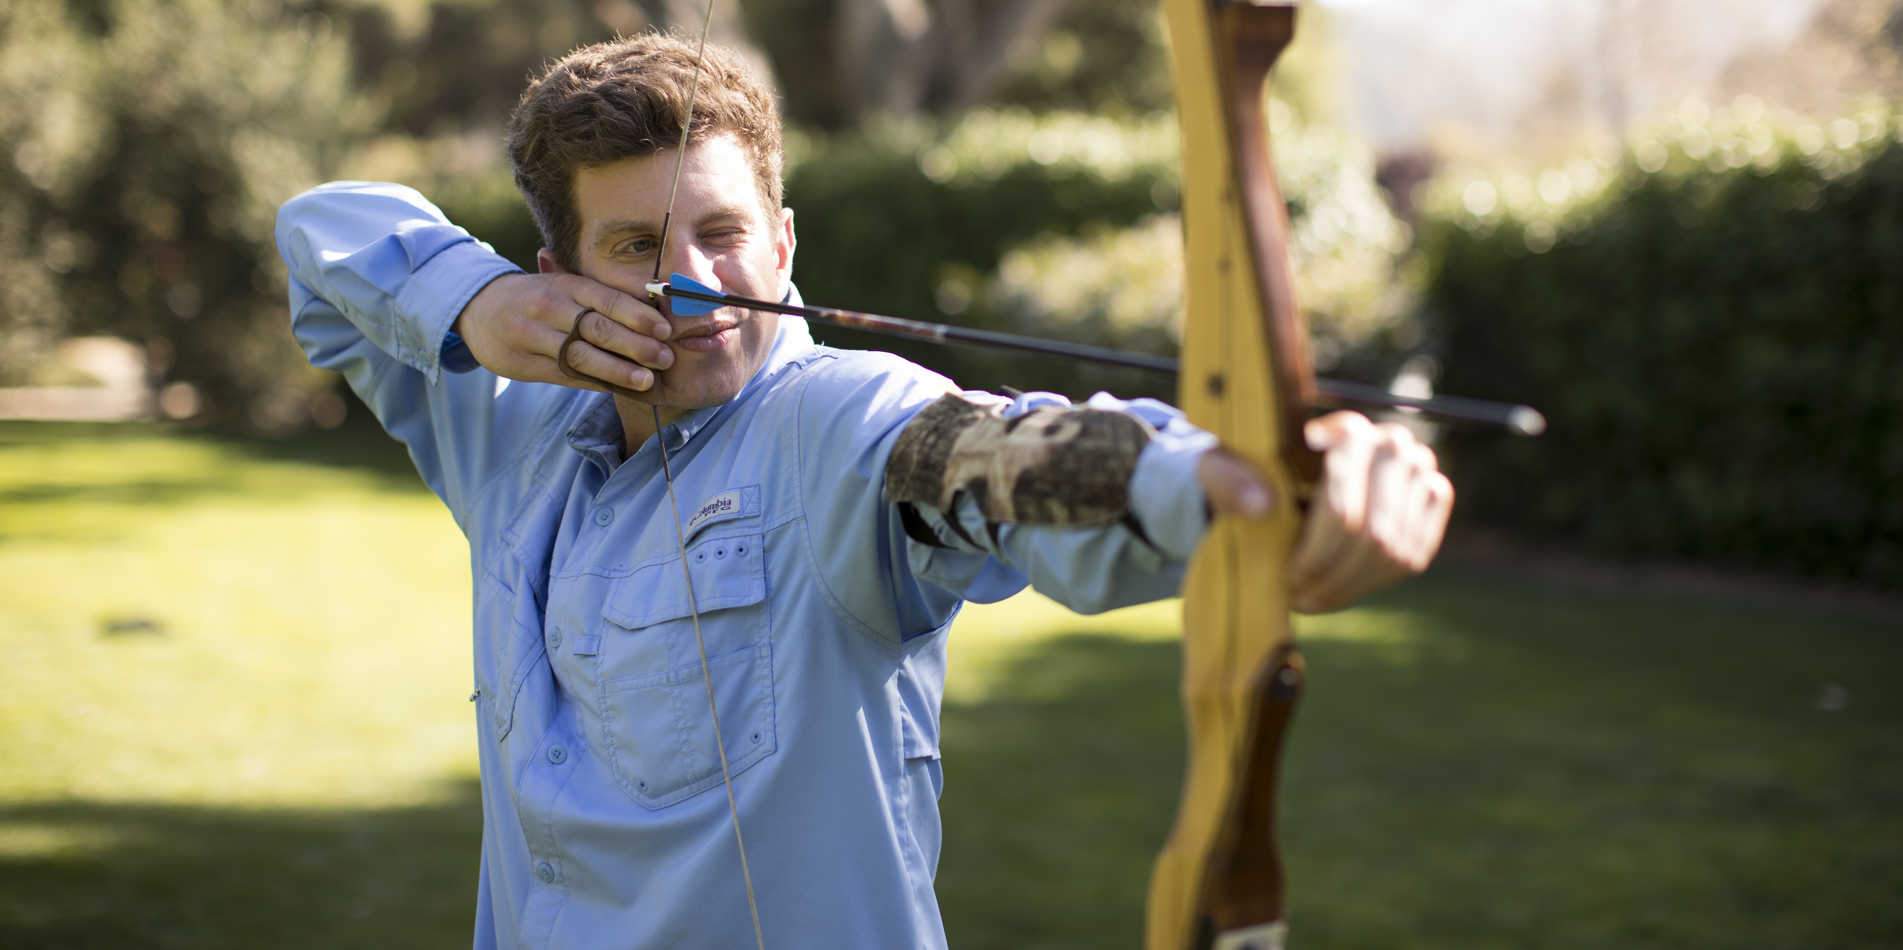 Carmel Valley Ranch_Activities_Archery_05_PD